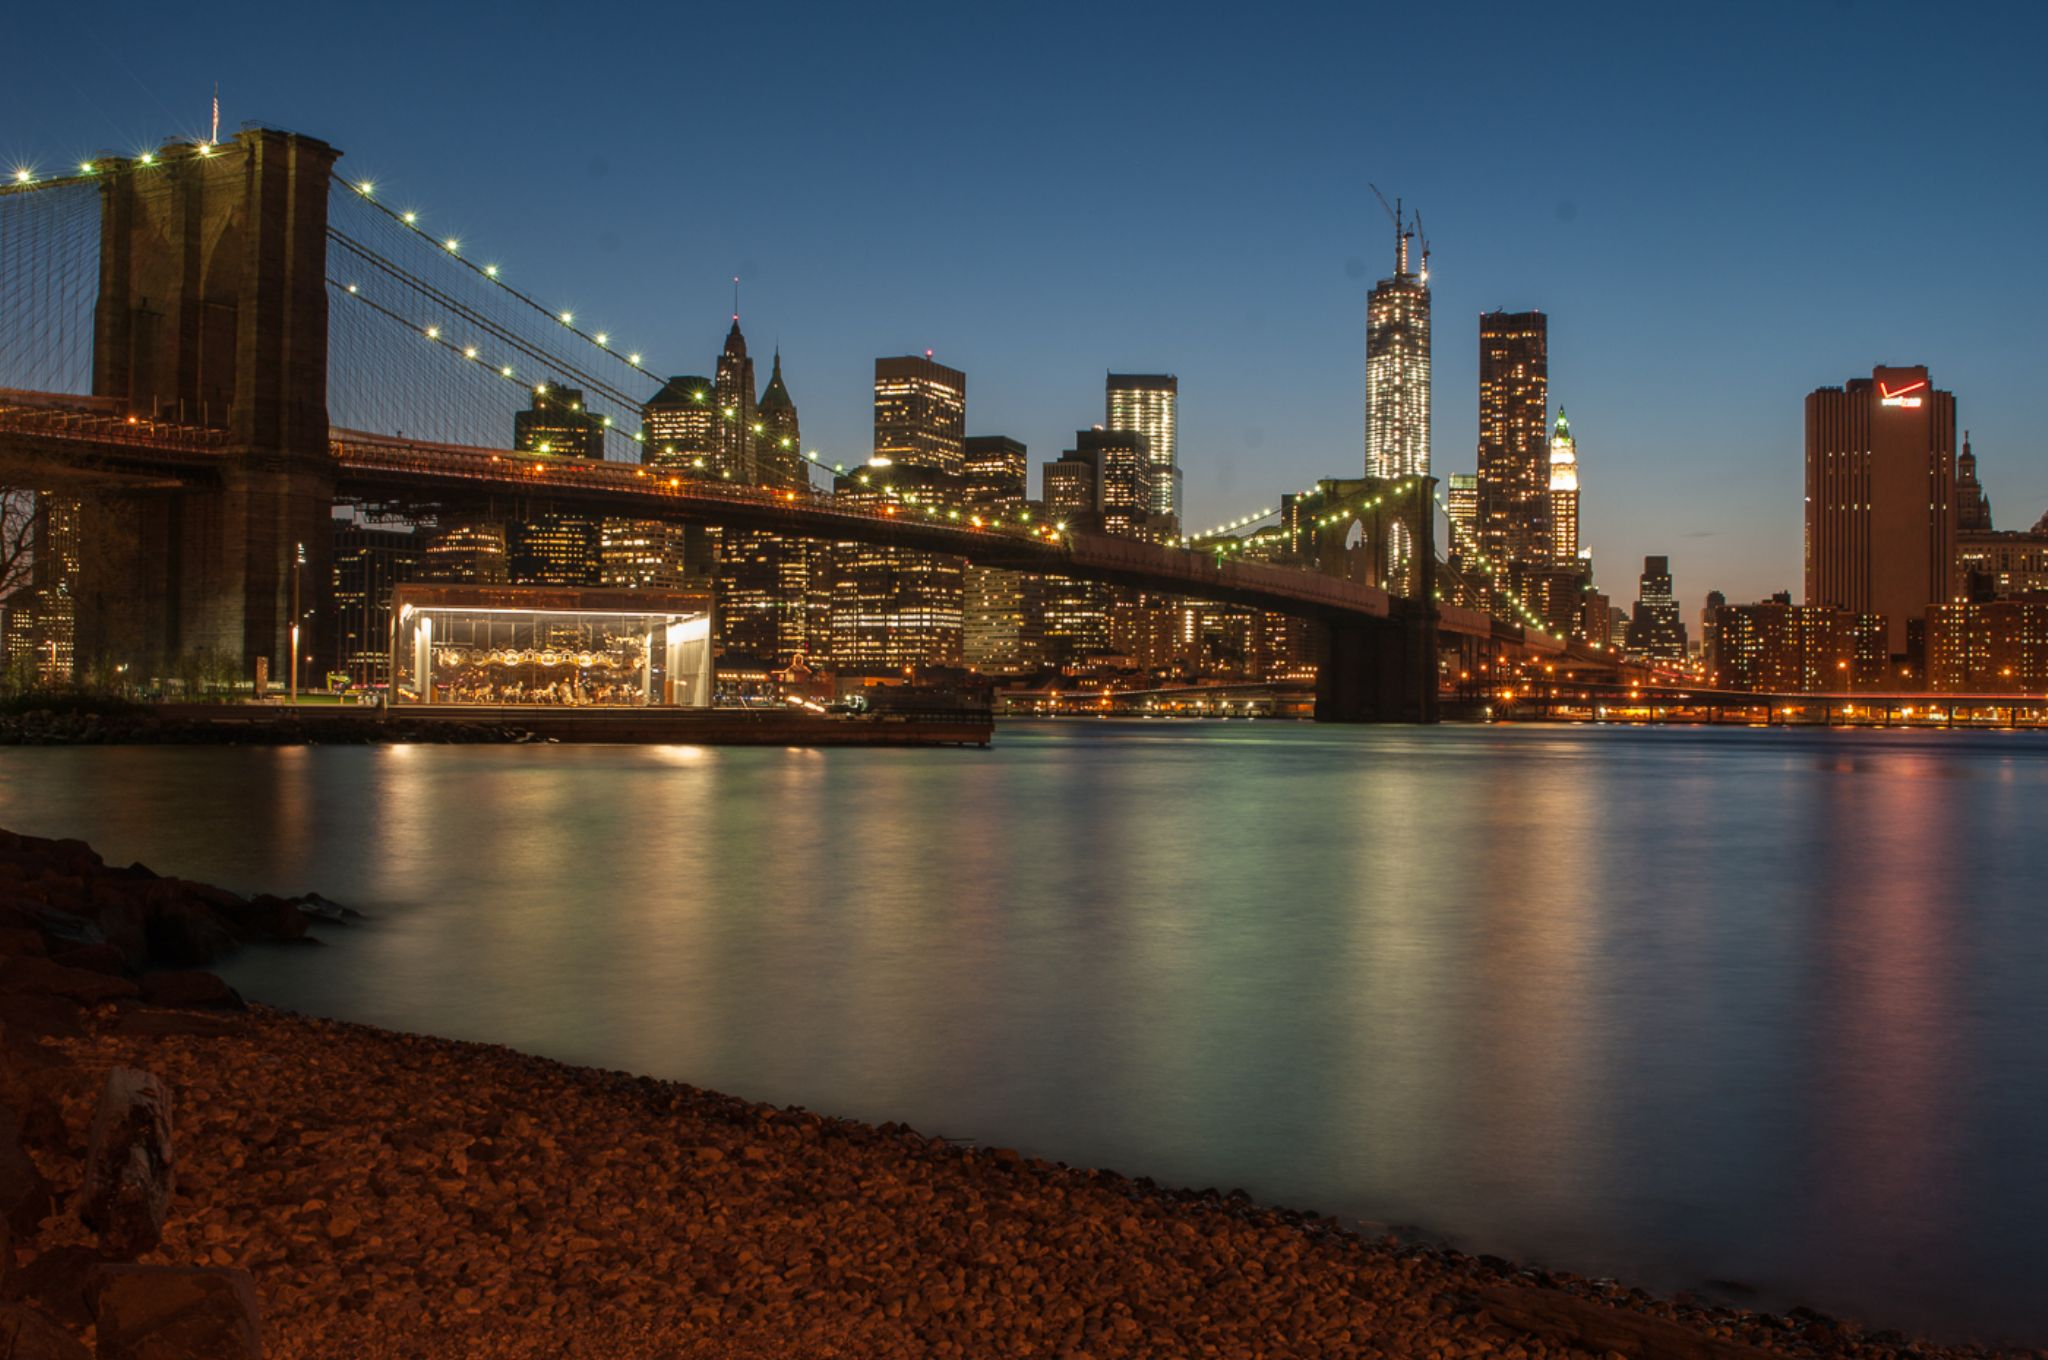 The City That Never Sleeps by George Pruitt